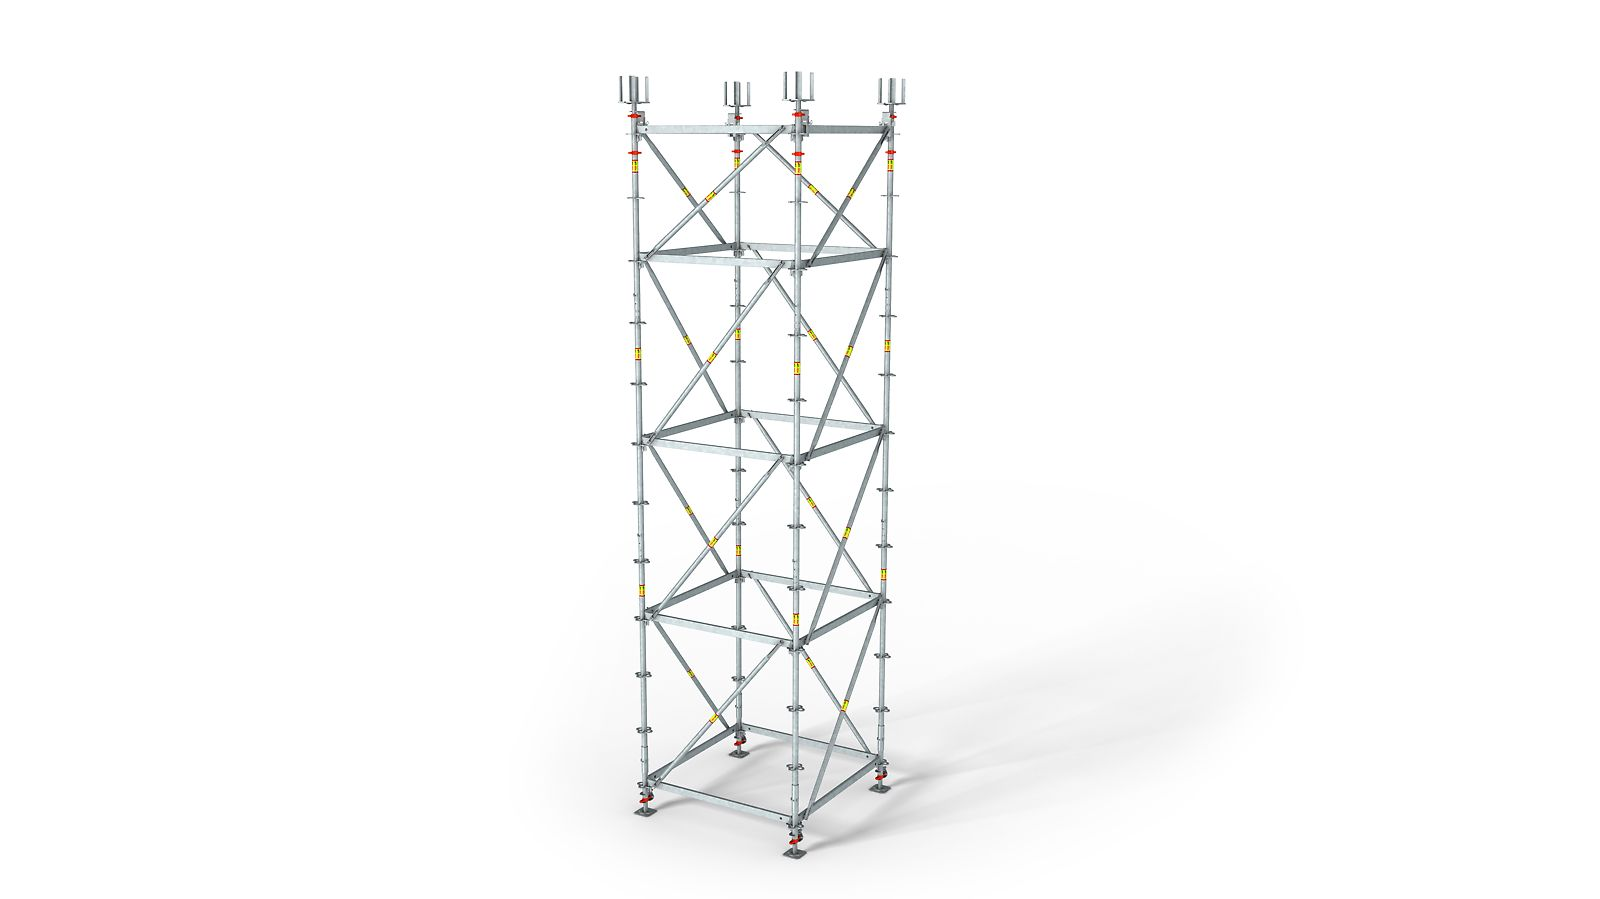 PERI UP Flex Shoring: The maximum level of flexibility.